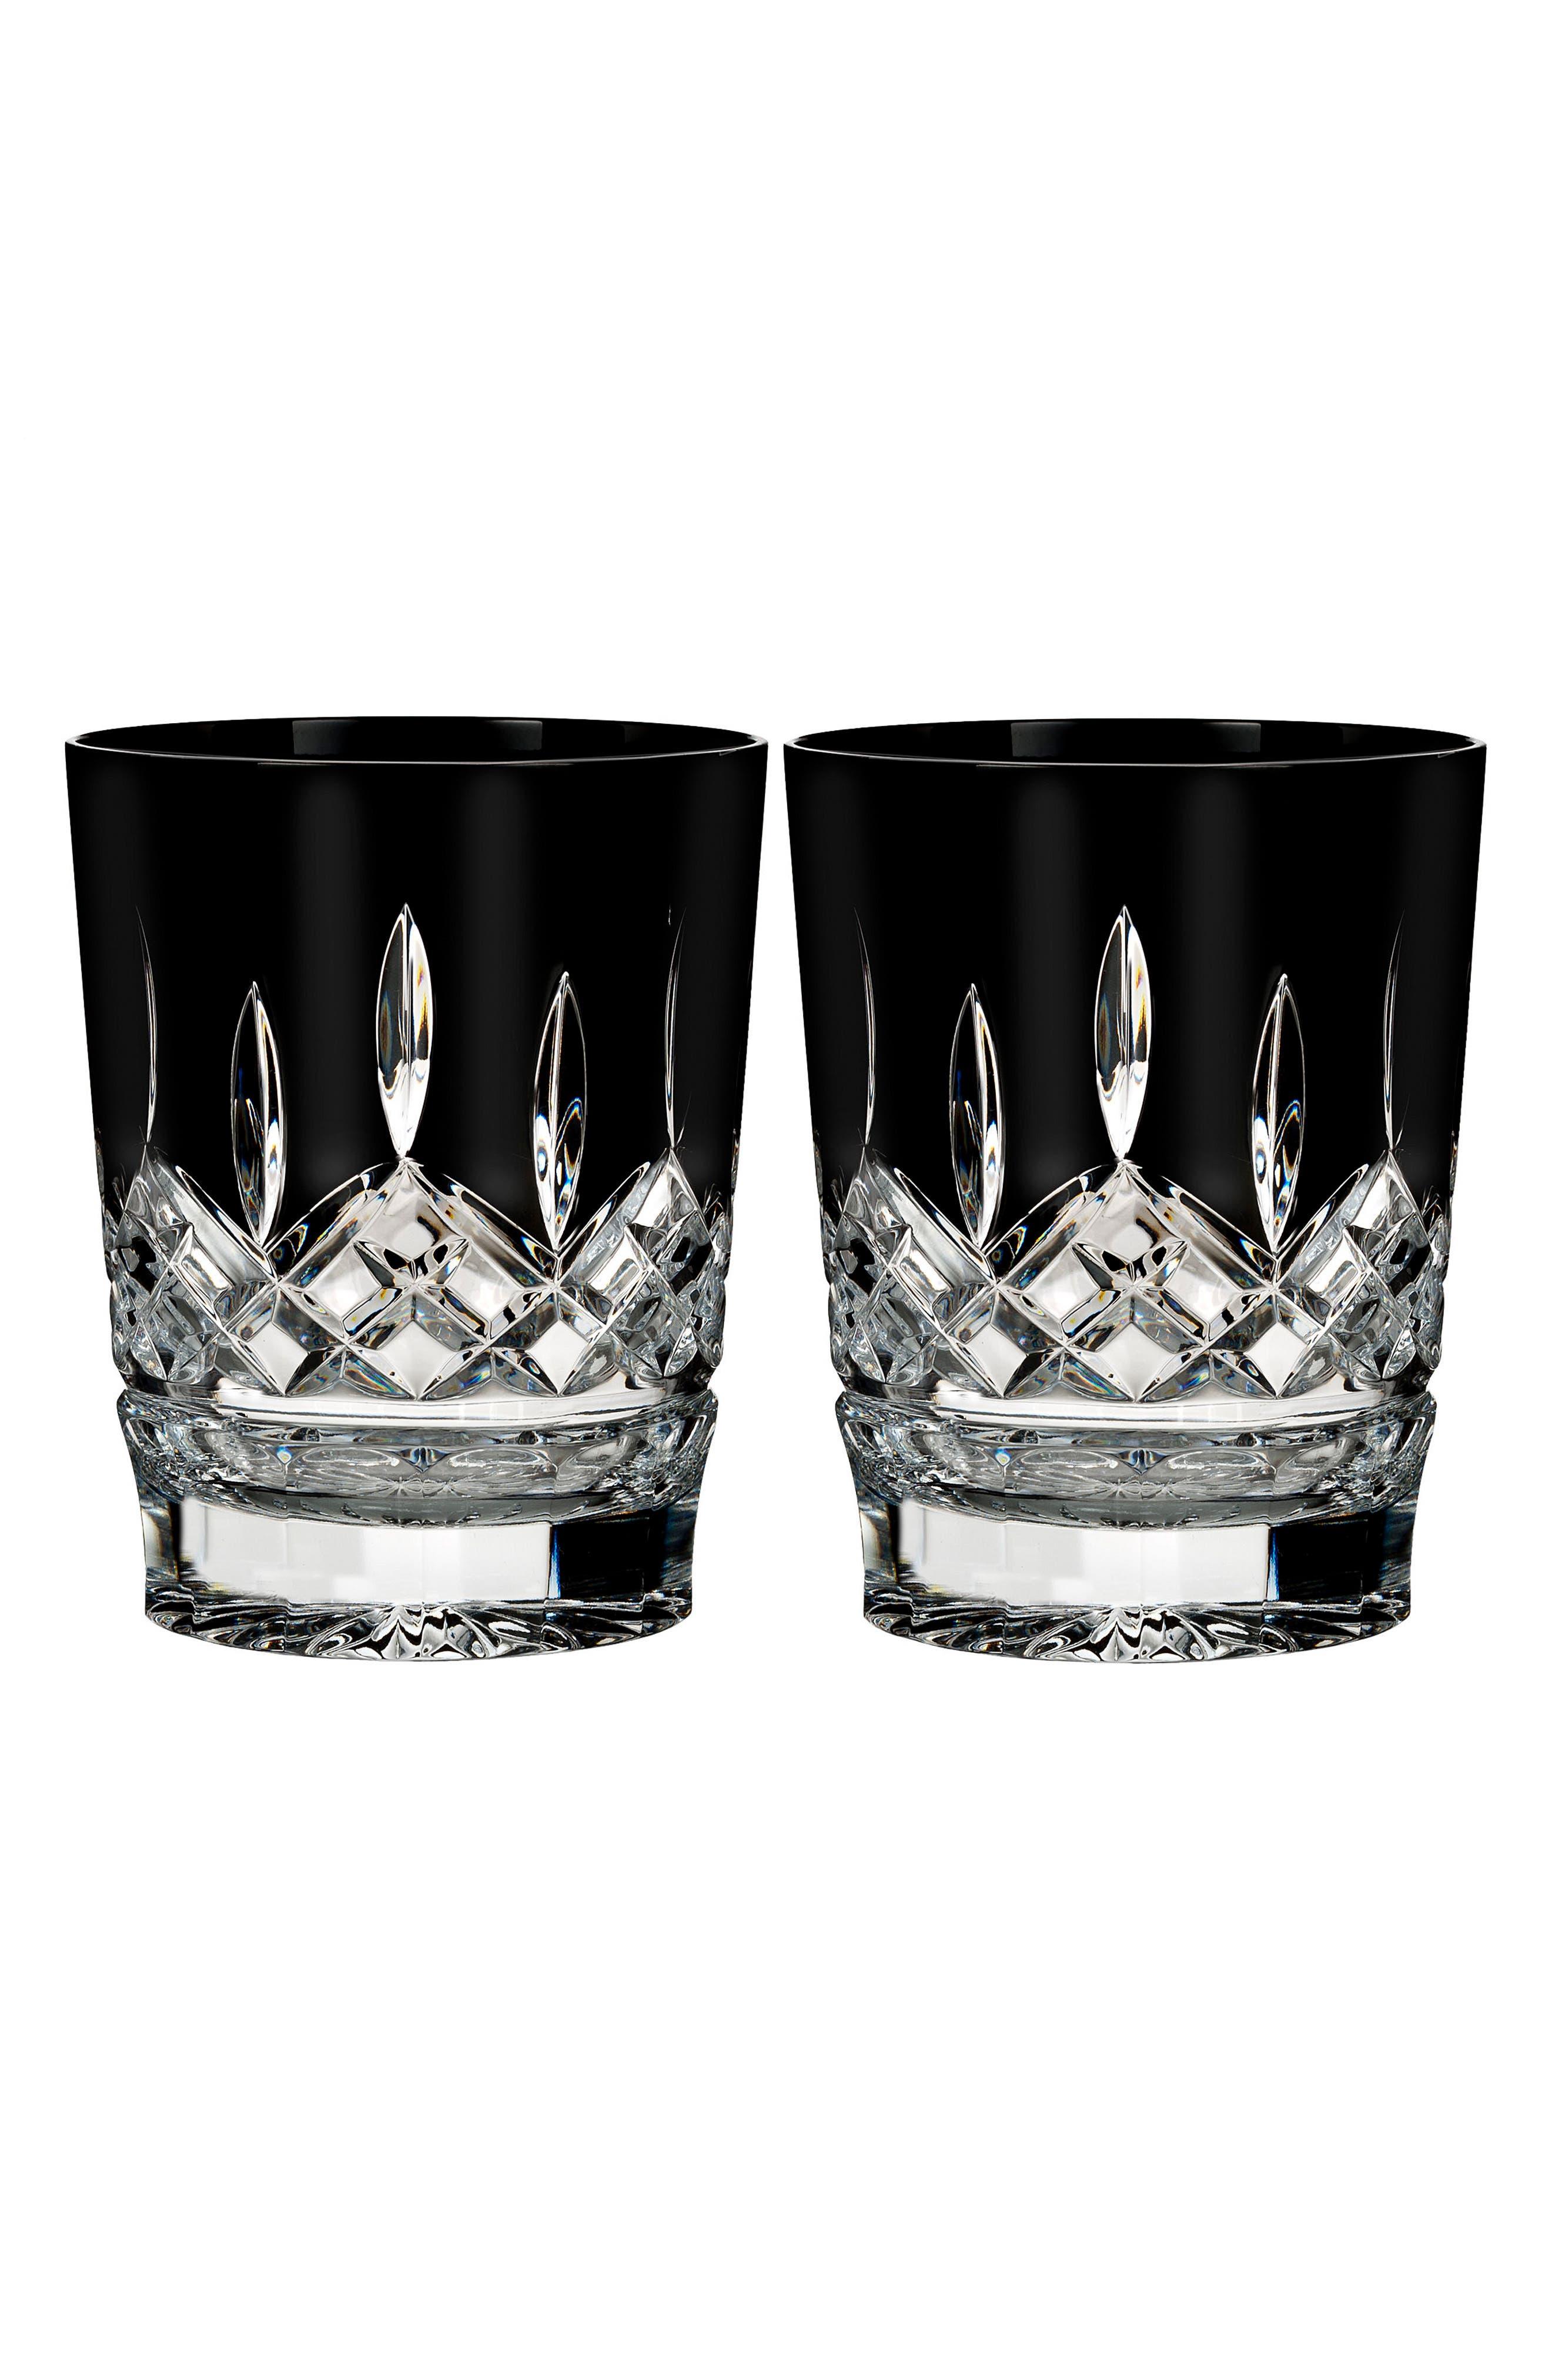 Lismore Diamond Set of 2 Black Lead Crystal Double Old Fashioned Glasses,                         Main,                         color, Crystal